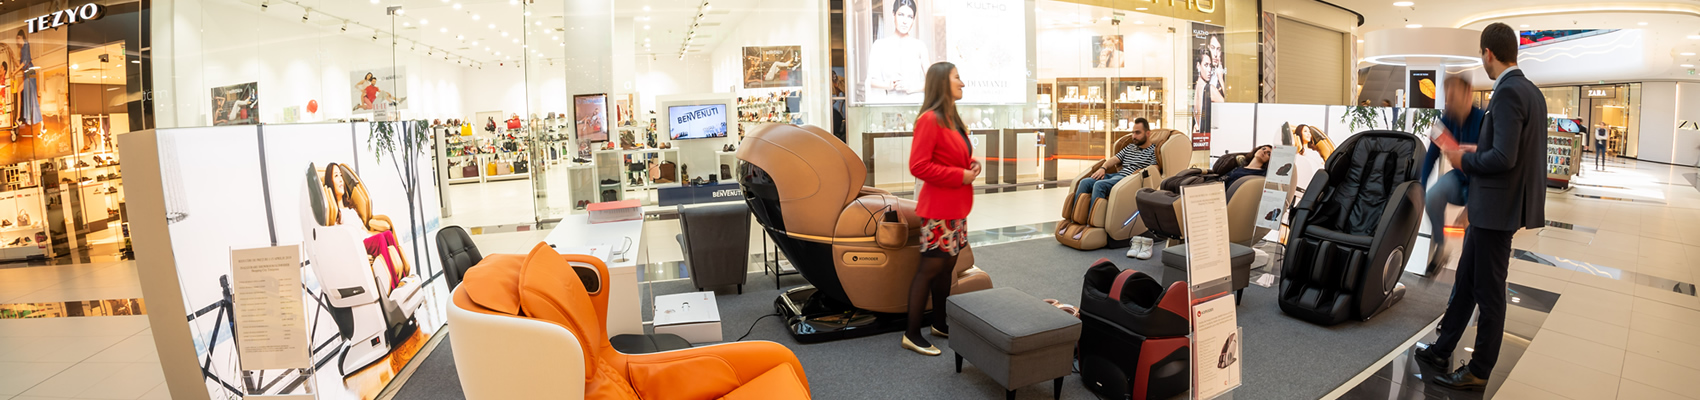 showroom Komoder din Shopping City Timisoara